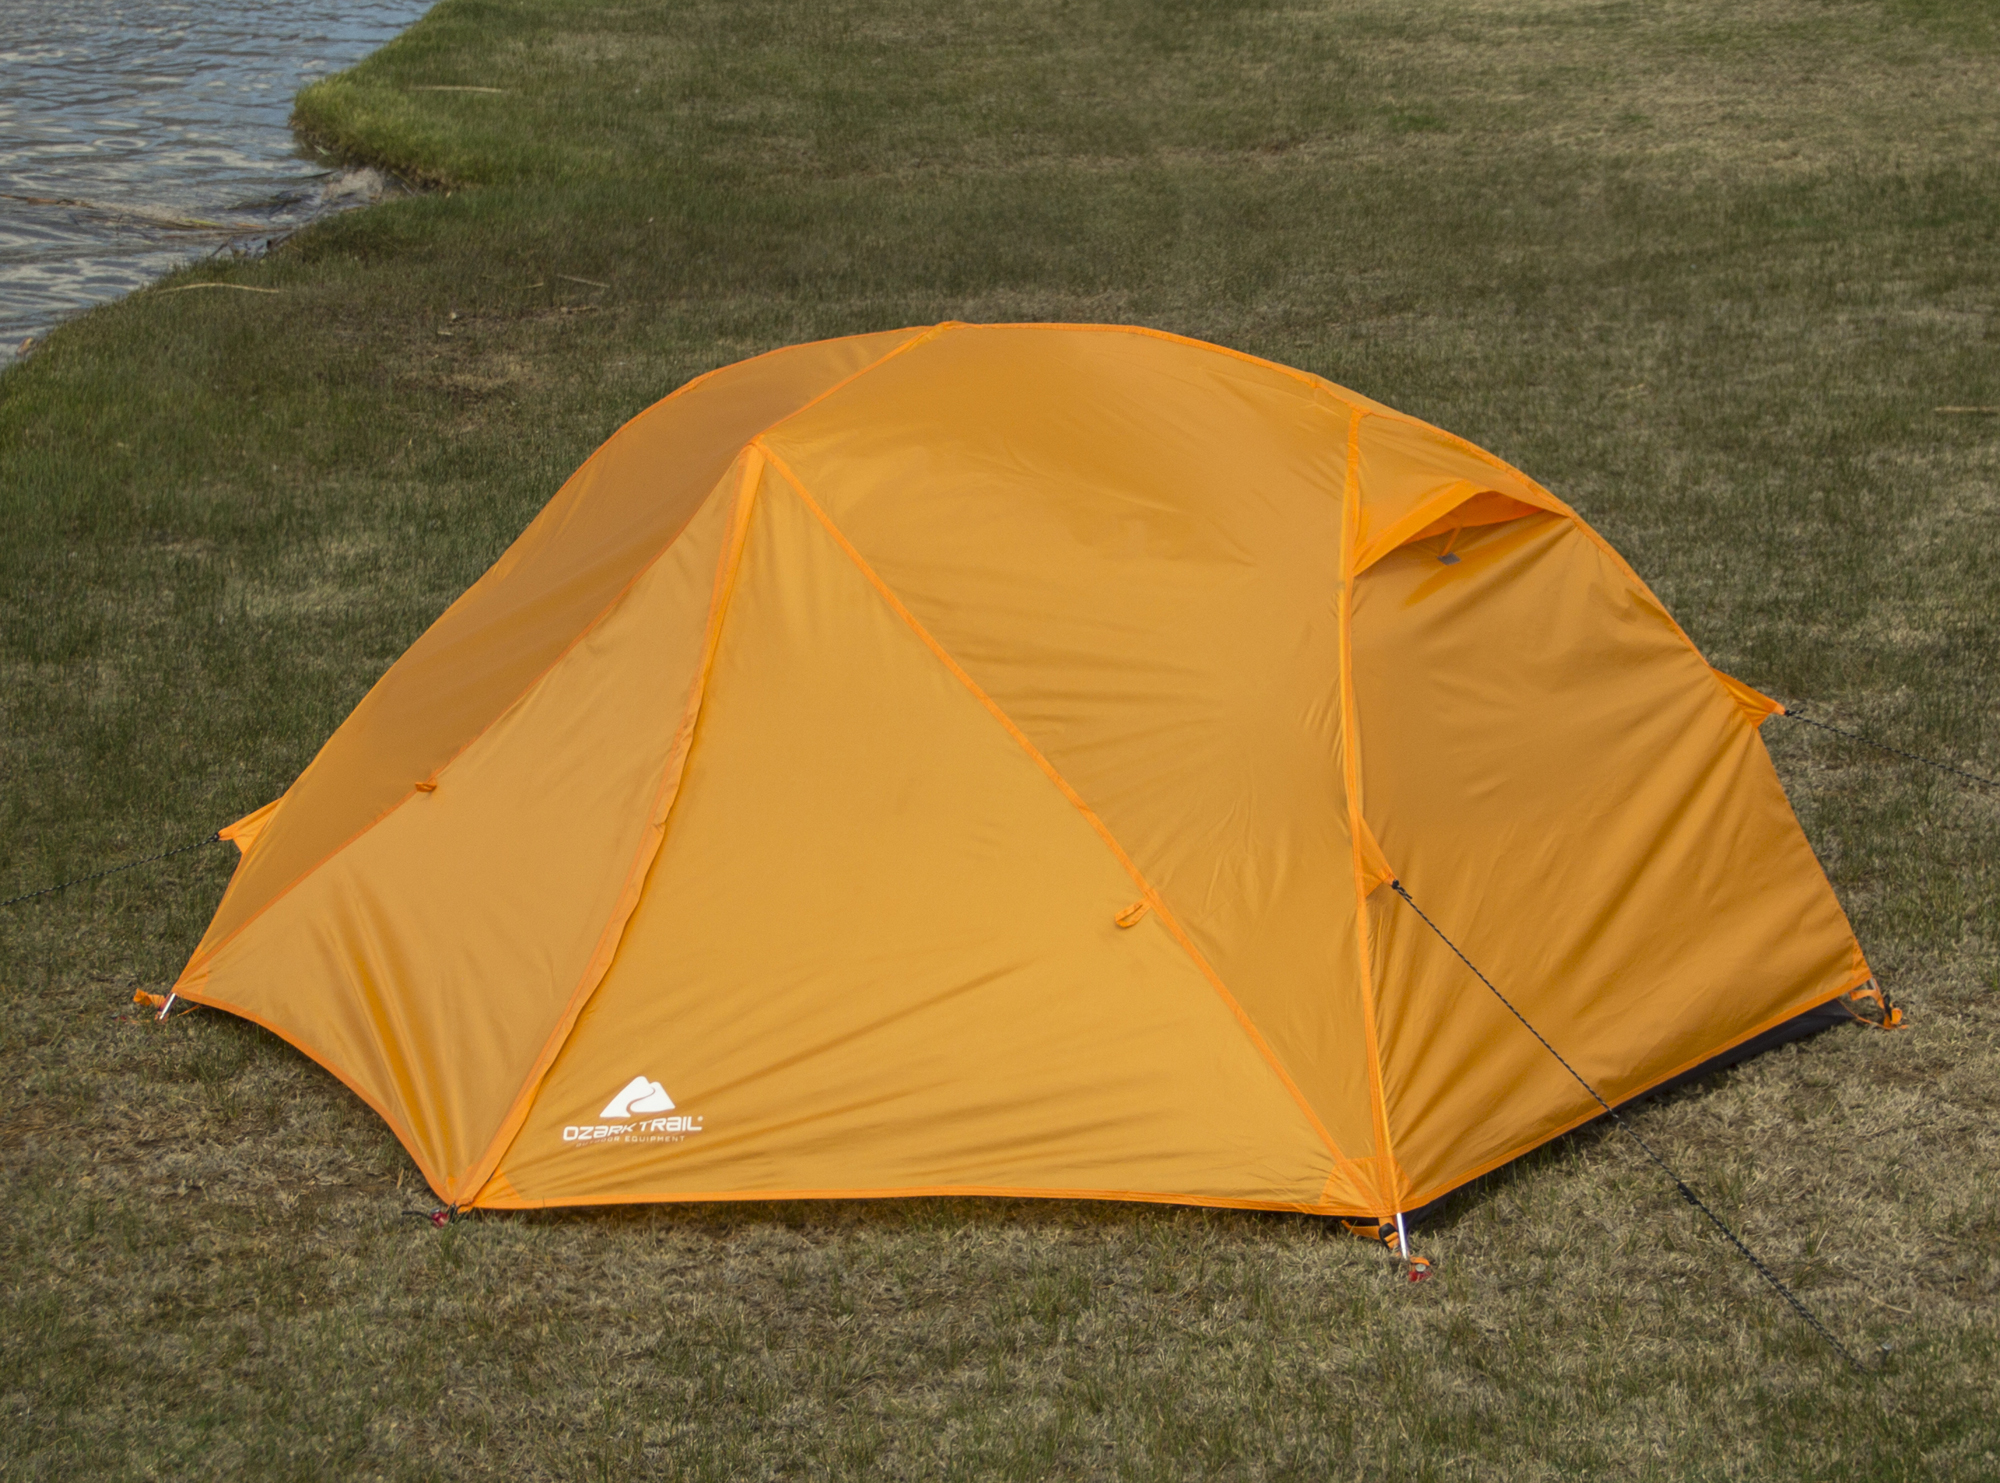 ... Ozark Trail Lightweight Aluminum Frame Backpacking Tent ...  sc 1 st  Canister Vacuums & Ozark Trail Lightweight Aluminum Frame Backpacking Tent Sleeps 2 ...